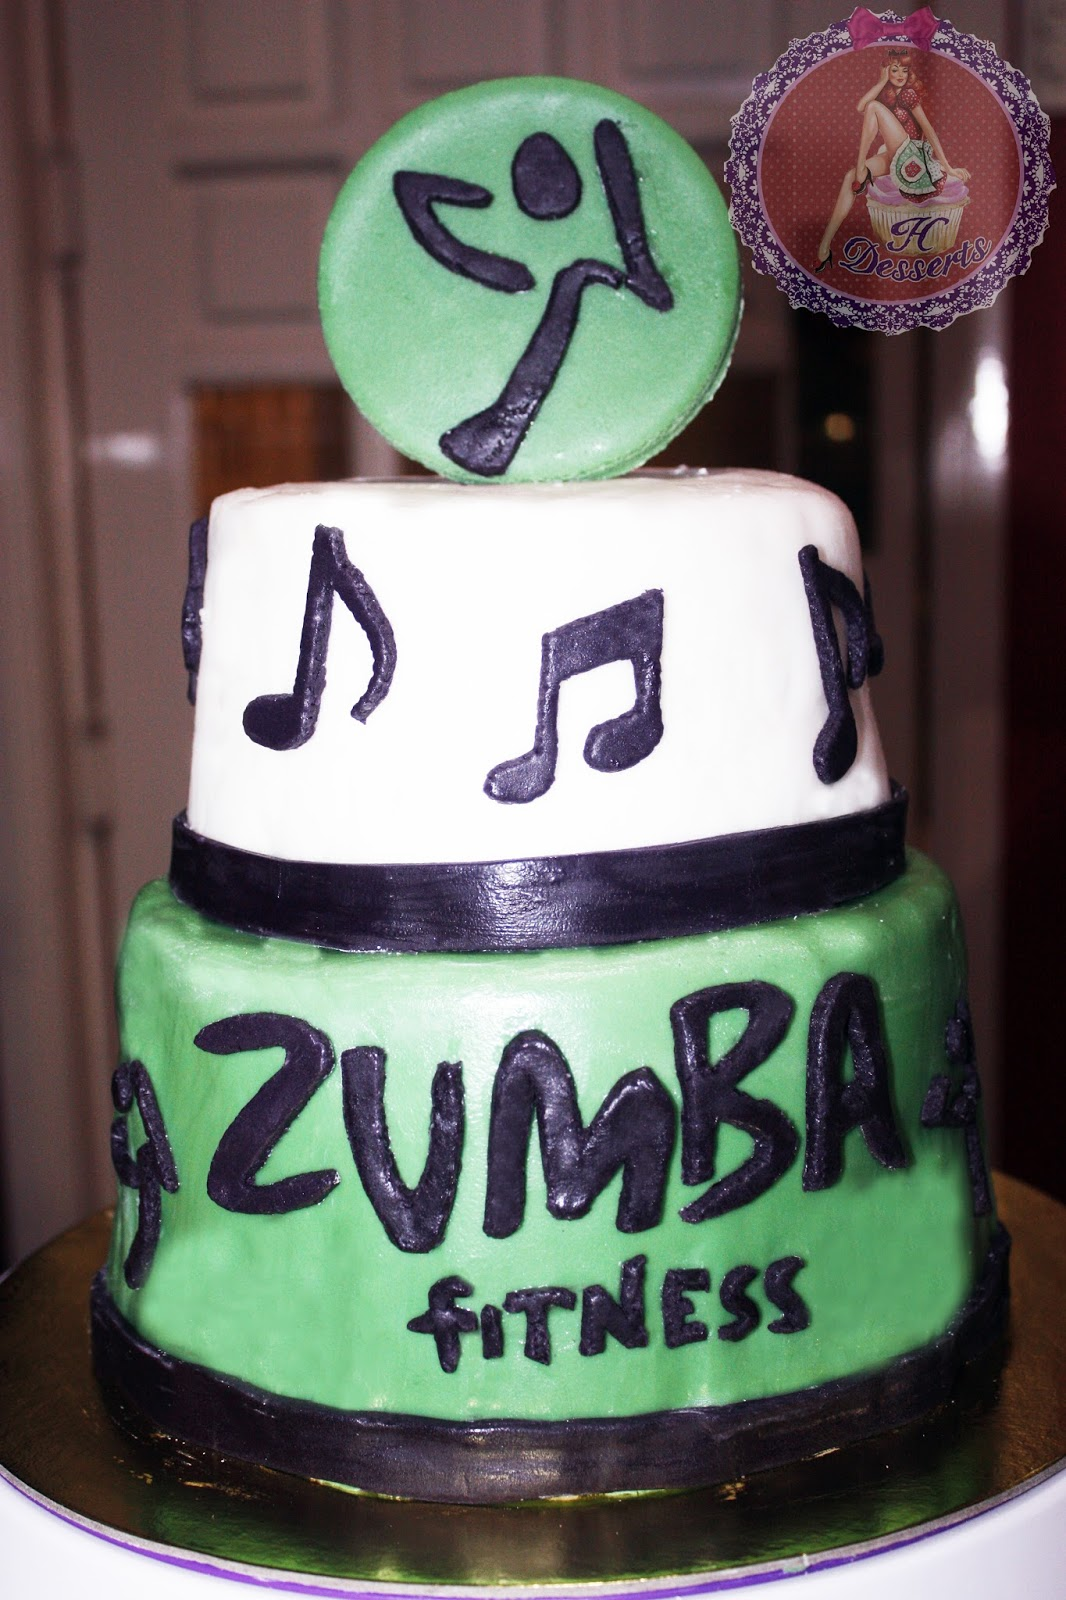 H Desserts All Edible Zumba Themed Birthday Cake As Requested By Client